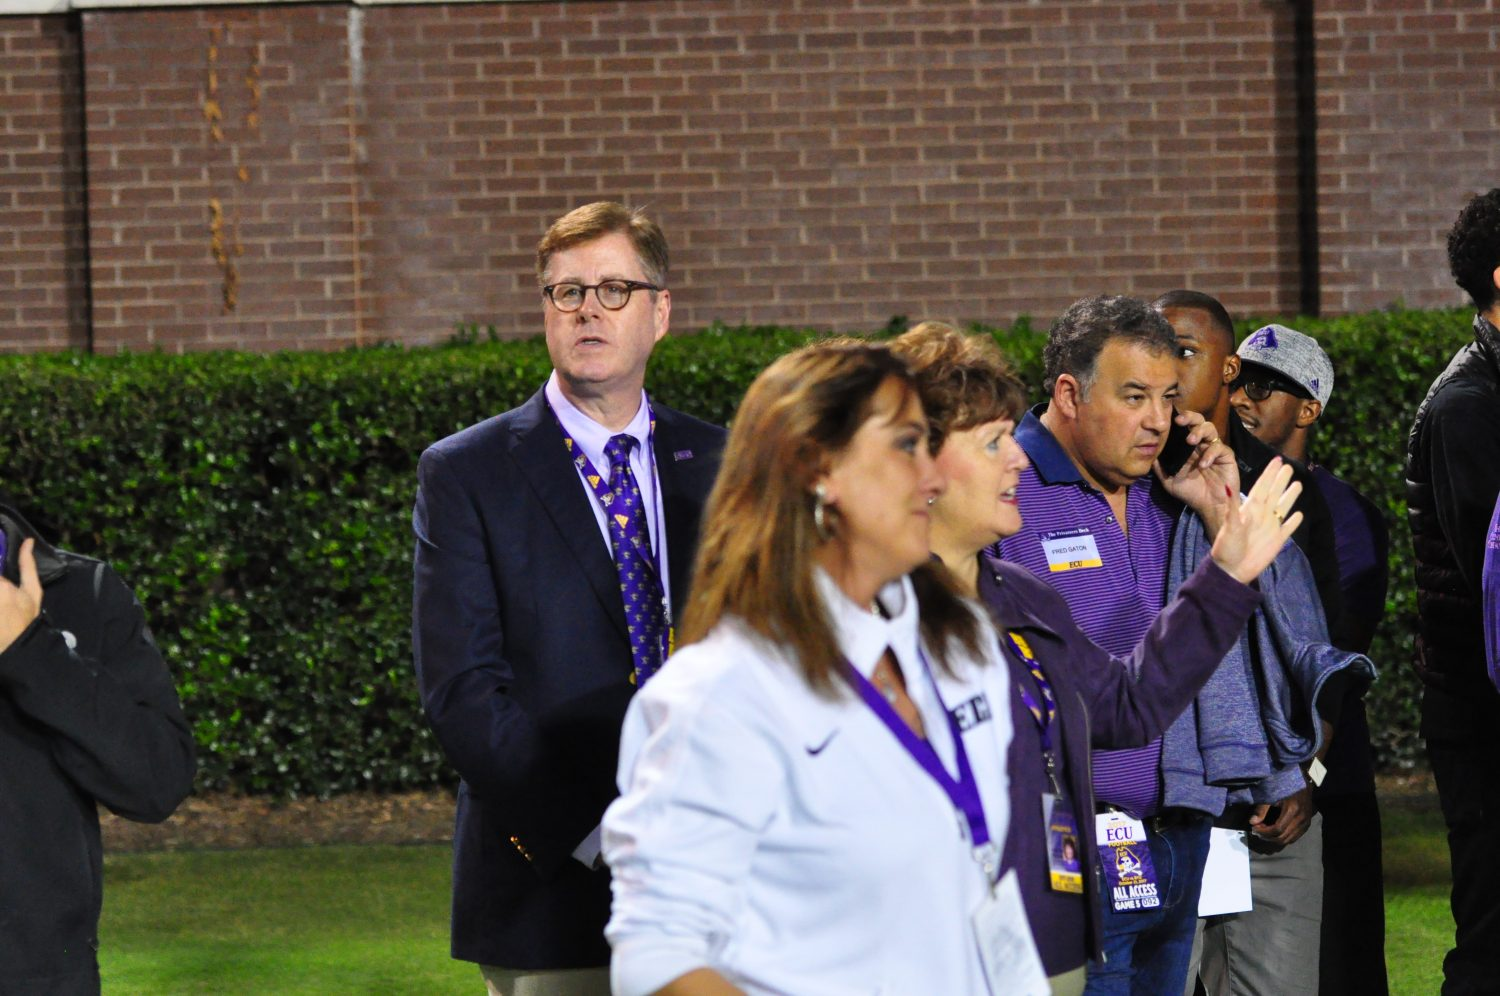 Dr. Cecil Staton, ECU chancellor, was looking on as the Pirates took the field. (Photo by Al Myatt)